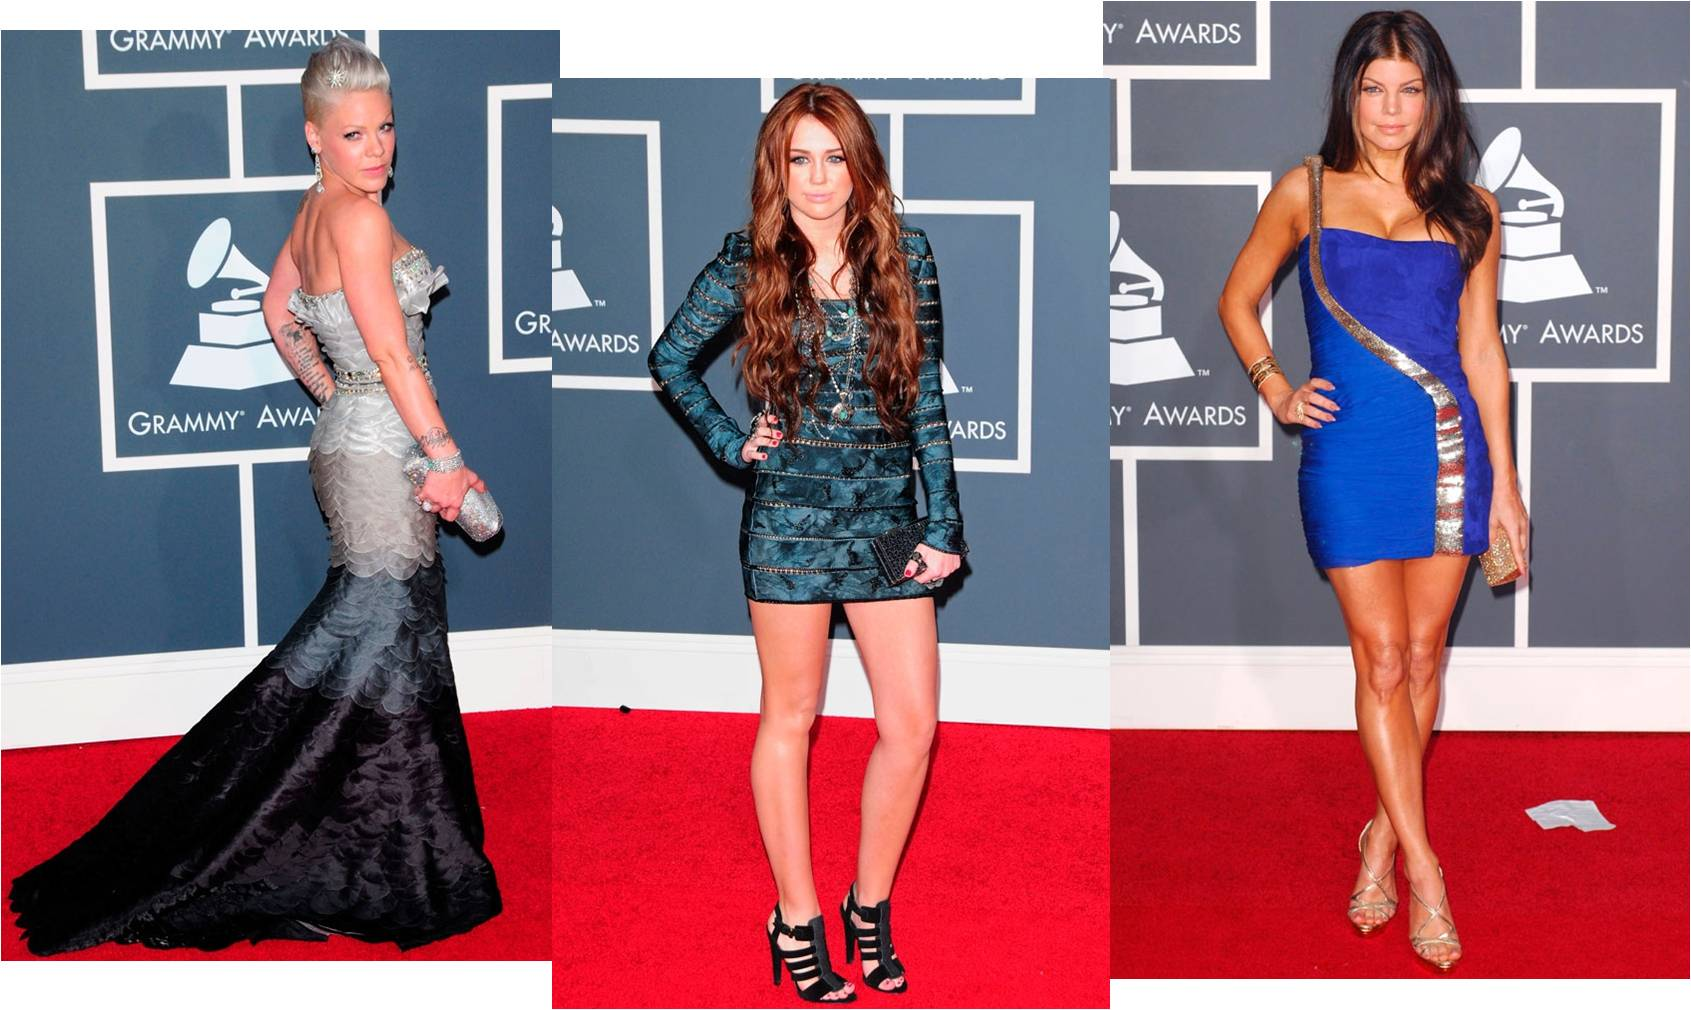 Miley+cyrus+at+the+vmas+2010